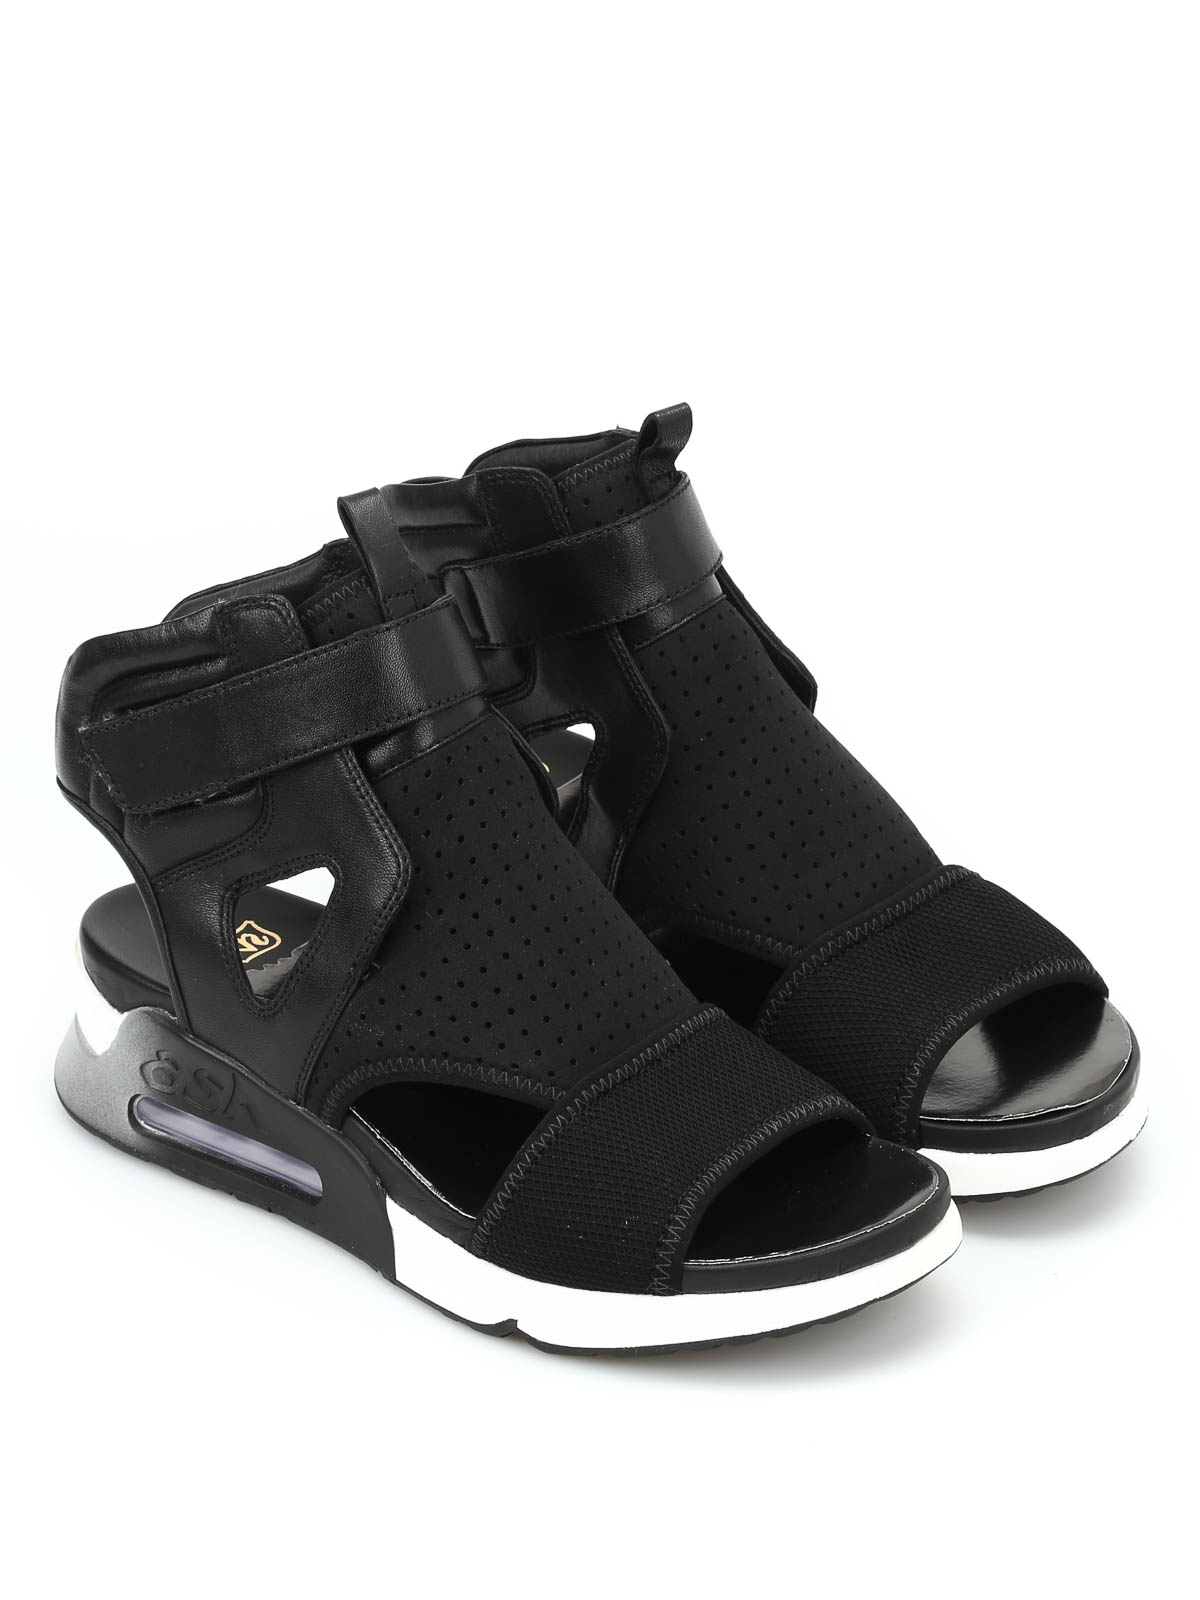 Ash Legend Sneaker Sandals Sandals 112698 002 Shop